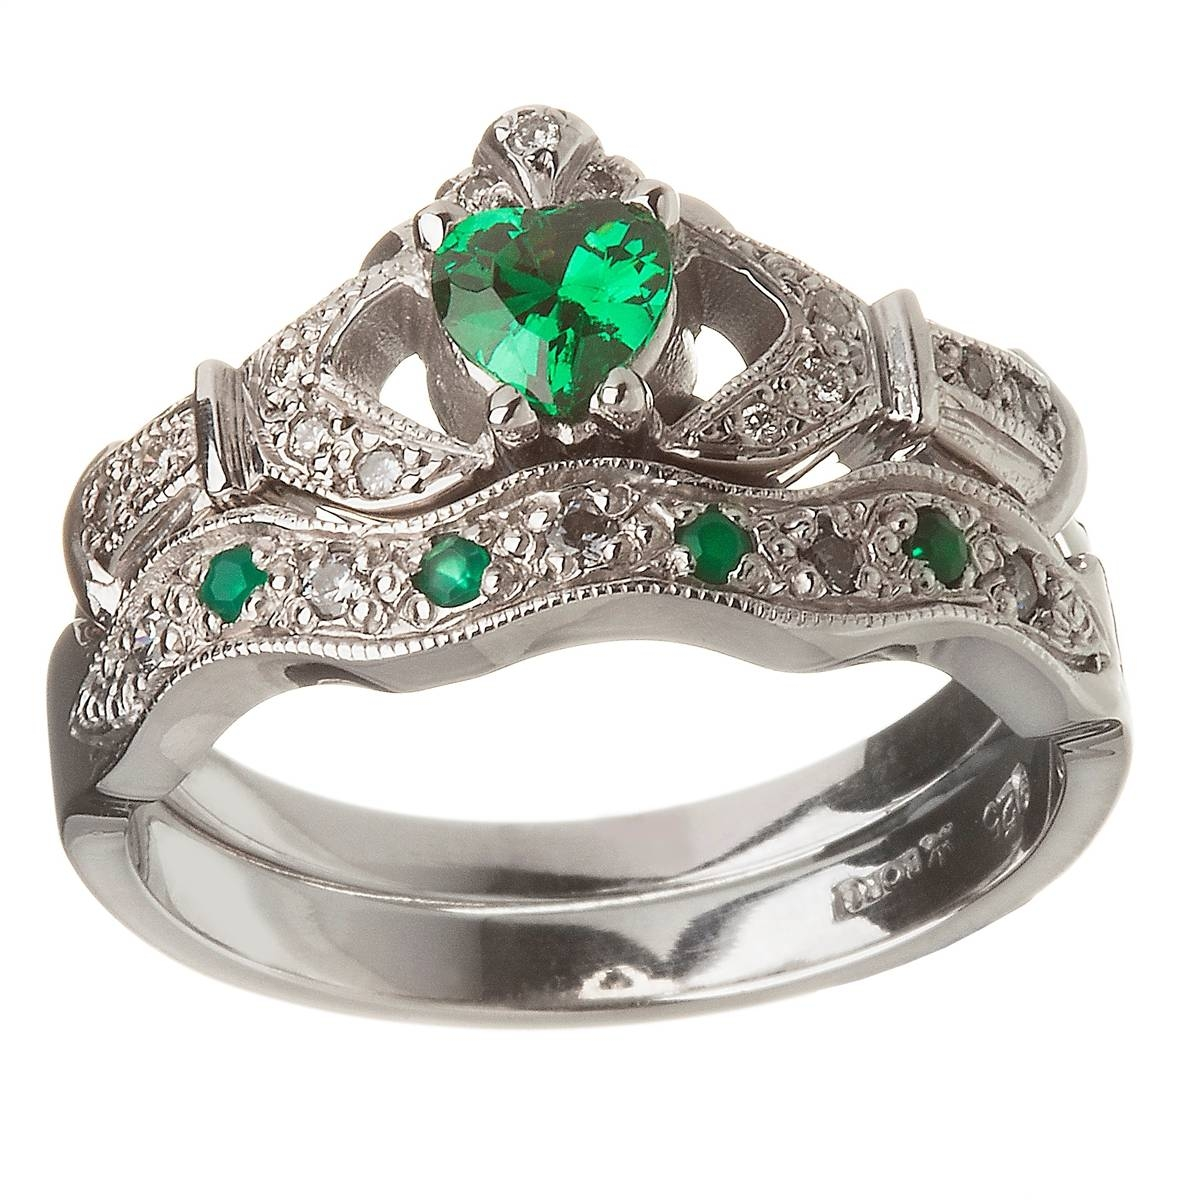 14K White Gold Emerald Set Heart Claddagh Ring & Wedding Ring Set Pertaining To Diamond Claddagh Engagement & Wedding Ring Sets (View 2 of 15)